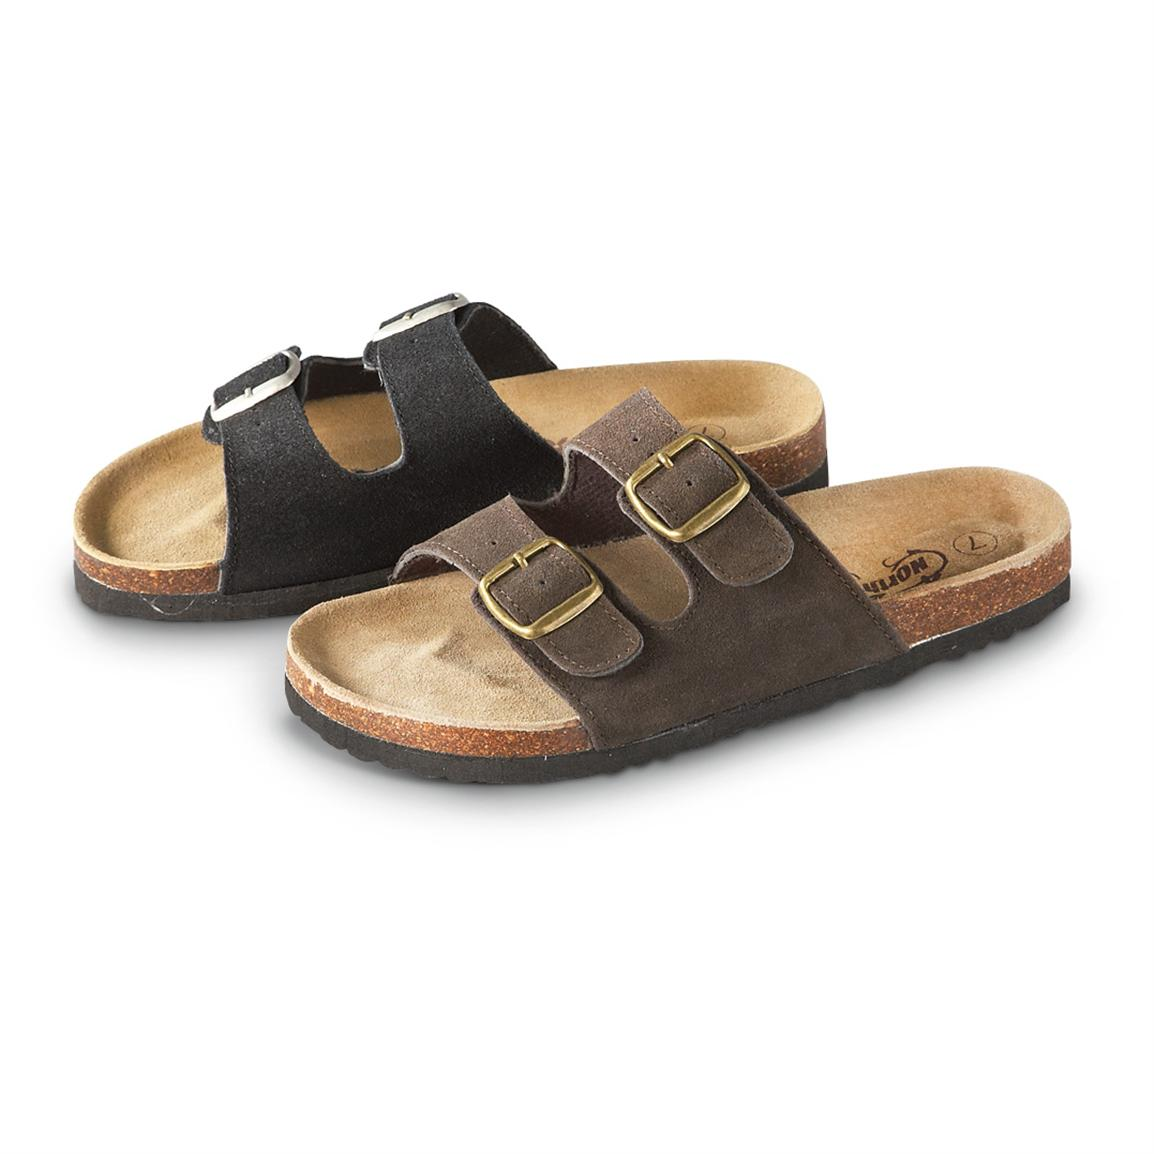 Women's Northside Mariani Sandals, Black / Brown